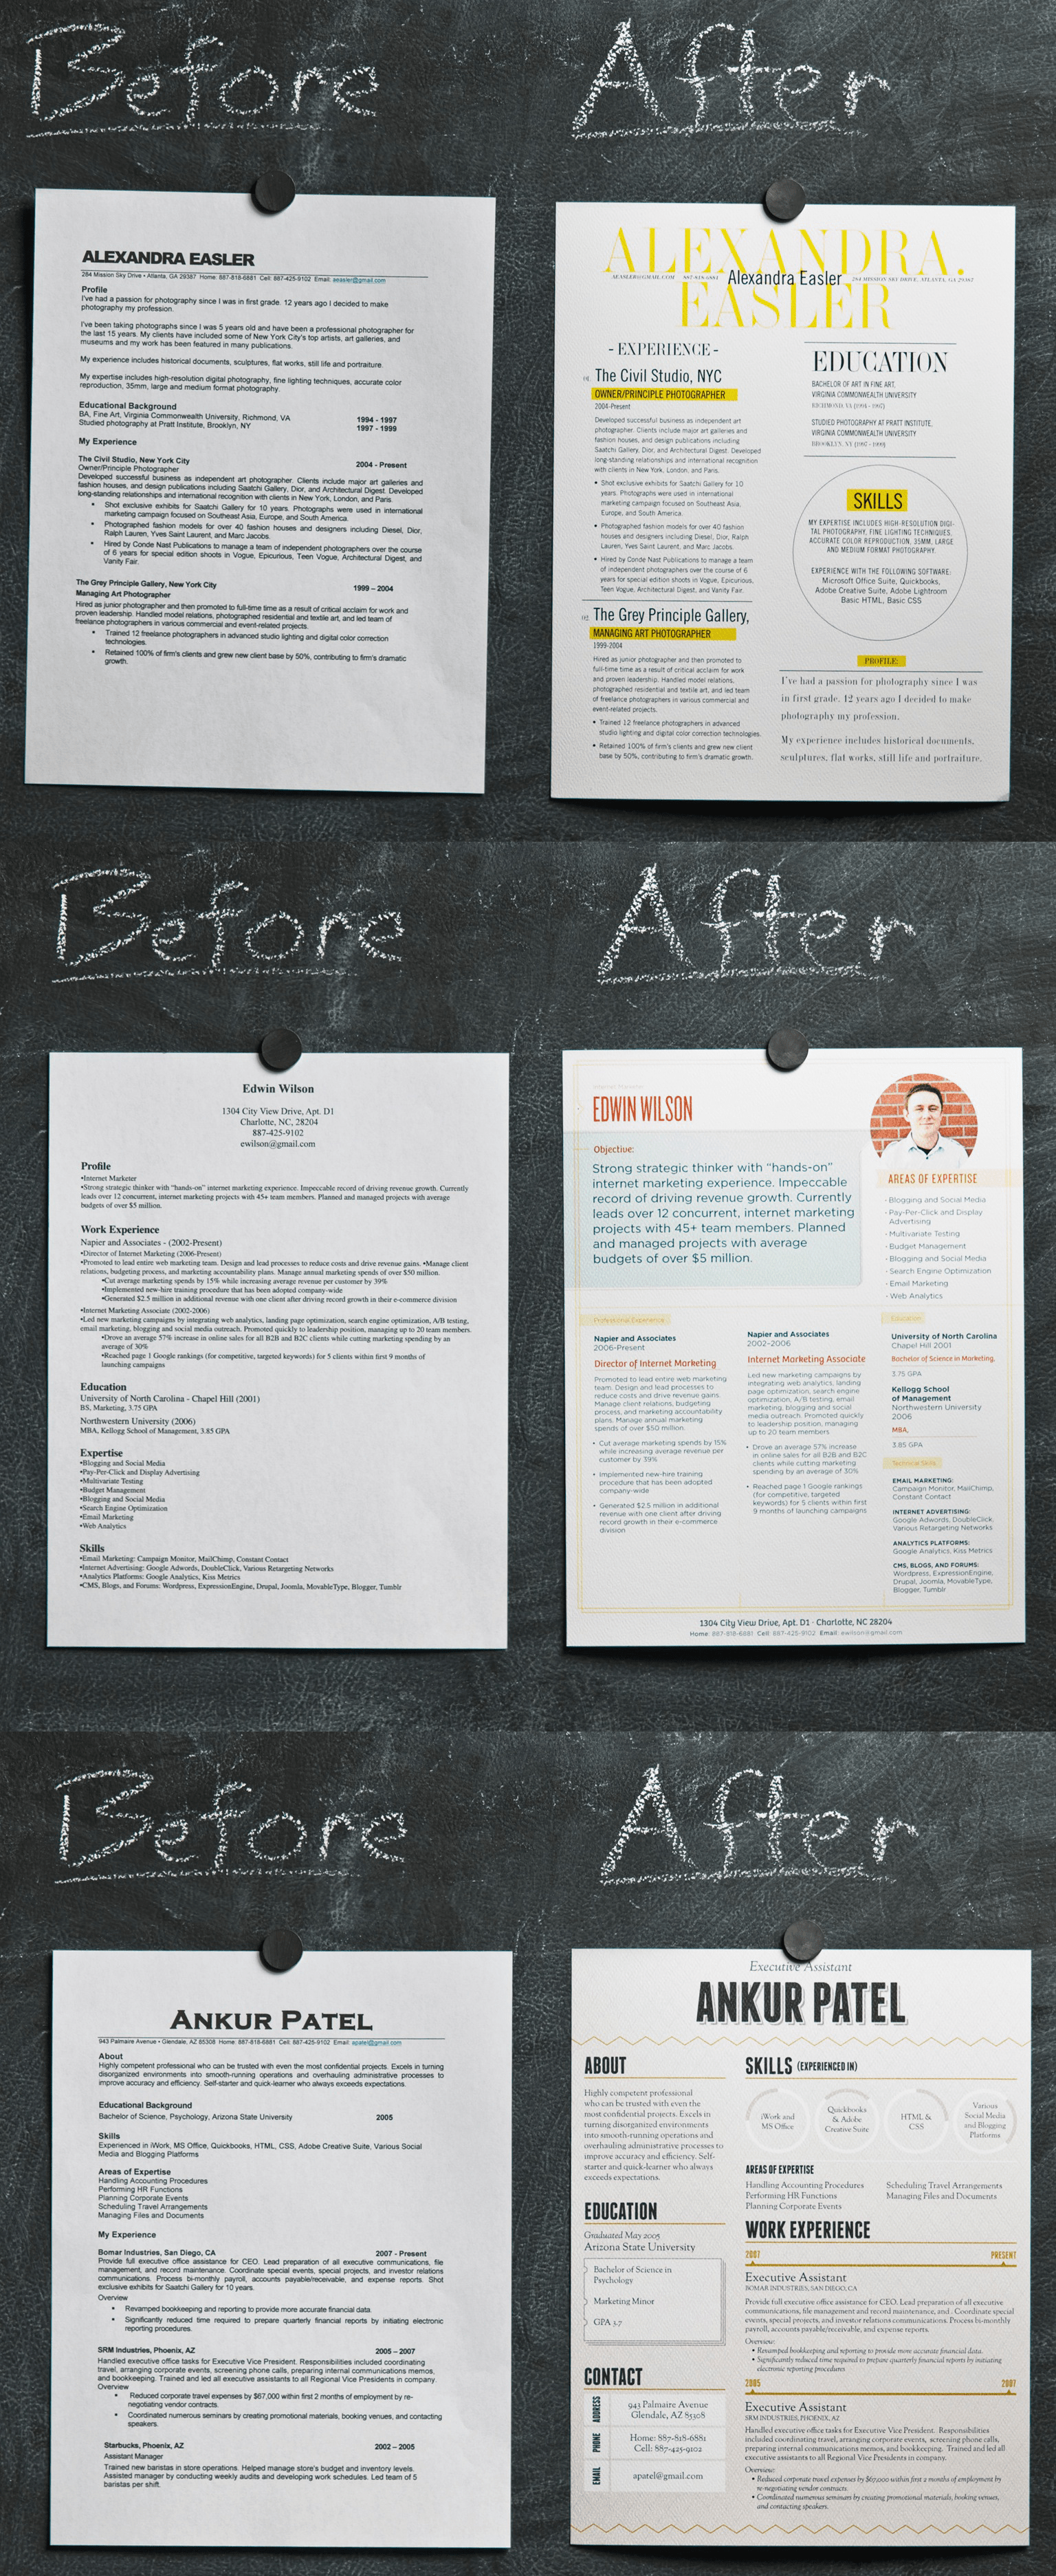 How To Make A Teacher Resume Stand Out Can Beautiful Design Make Your Resume Stand Out A Well